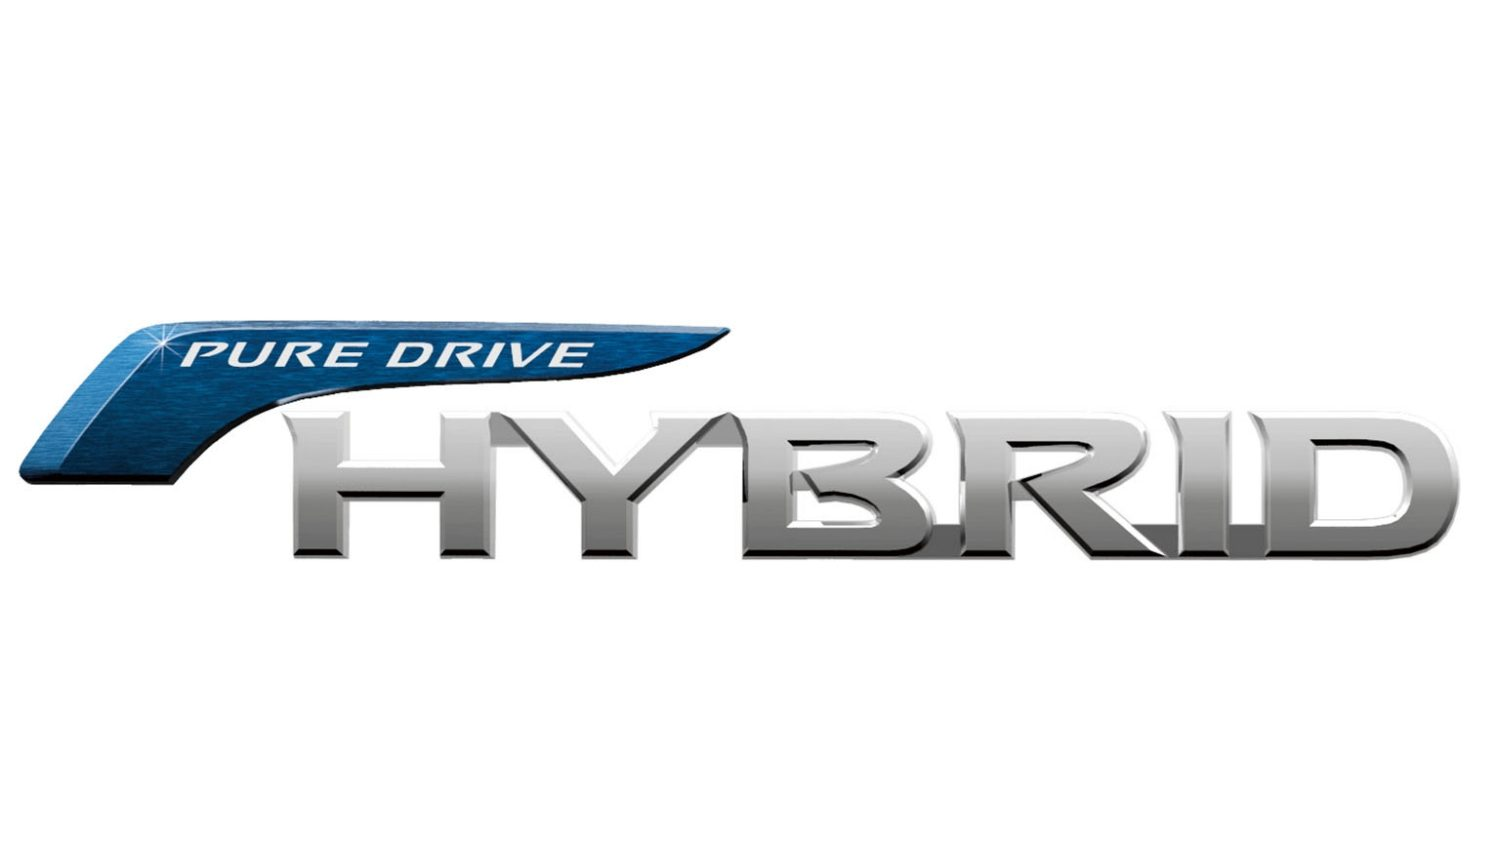 Pure Drive Hybrid Badge